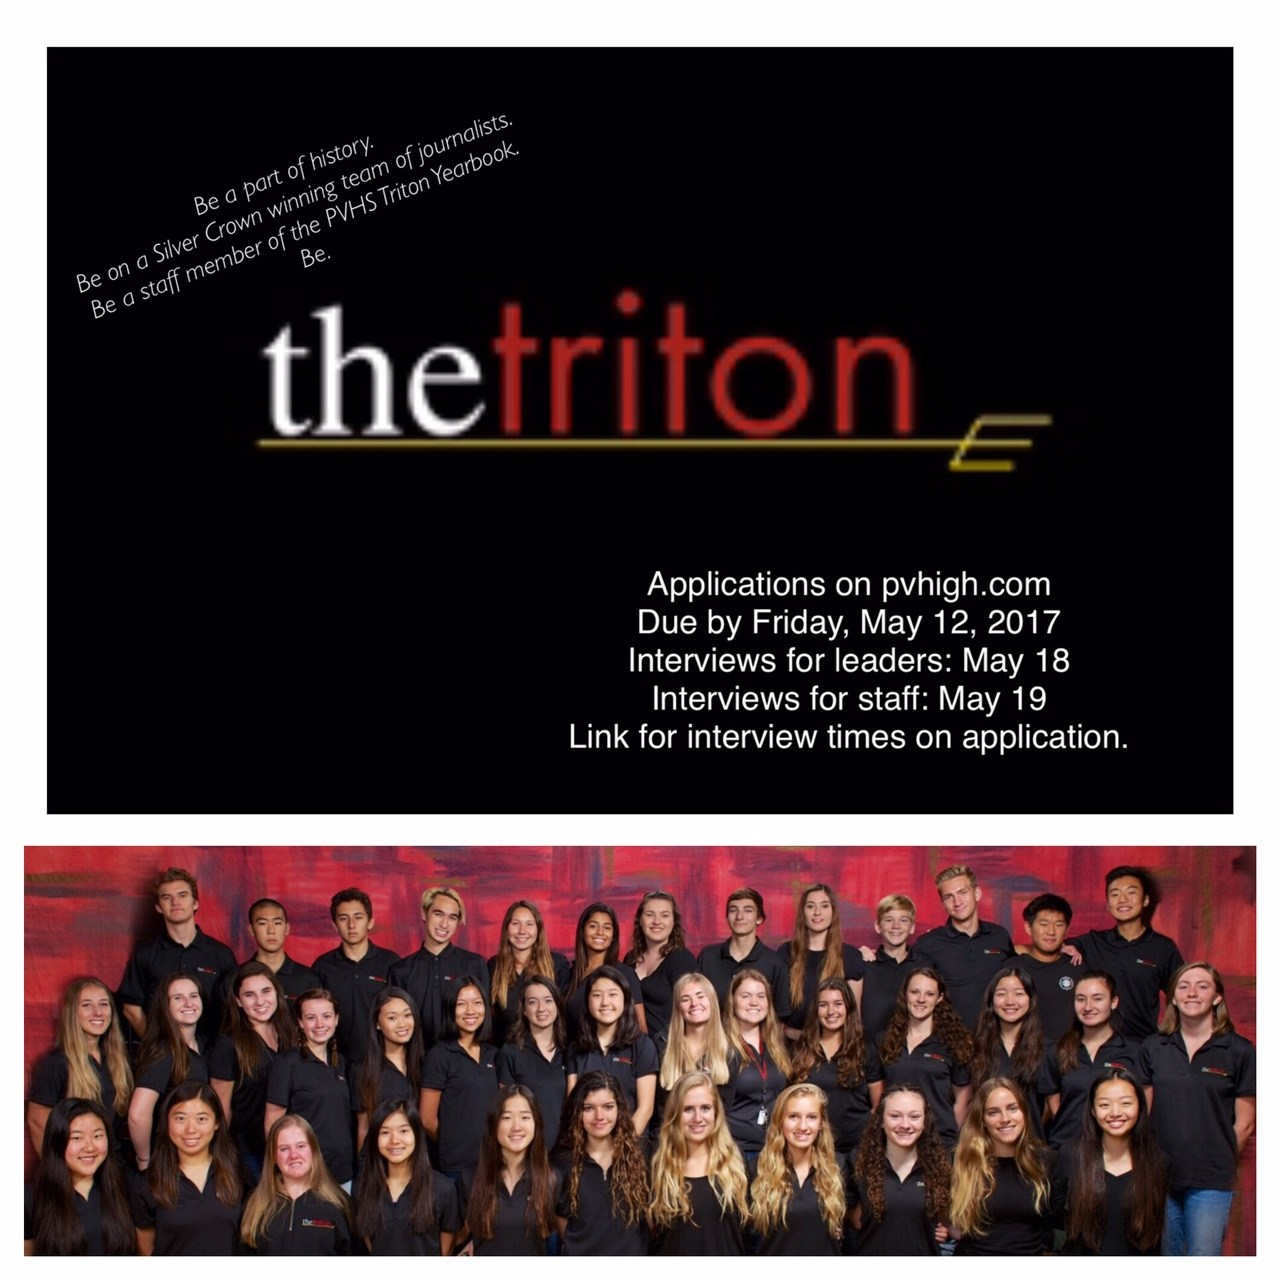 The Triton yearbook